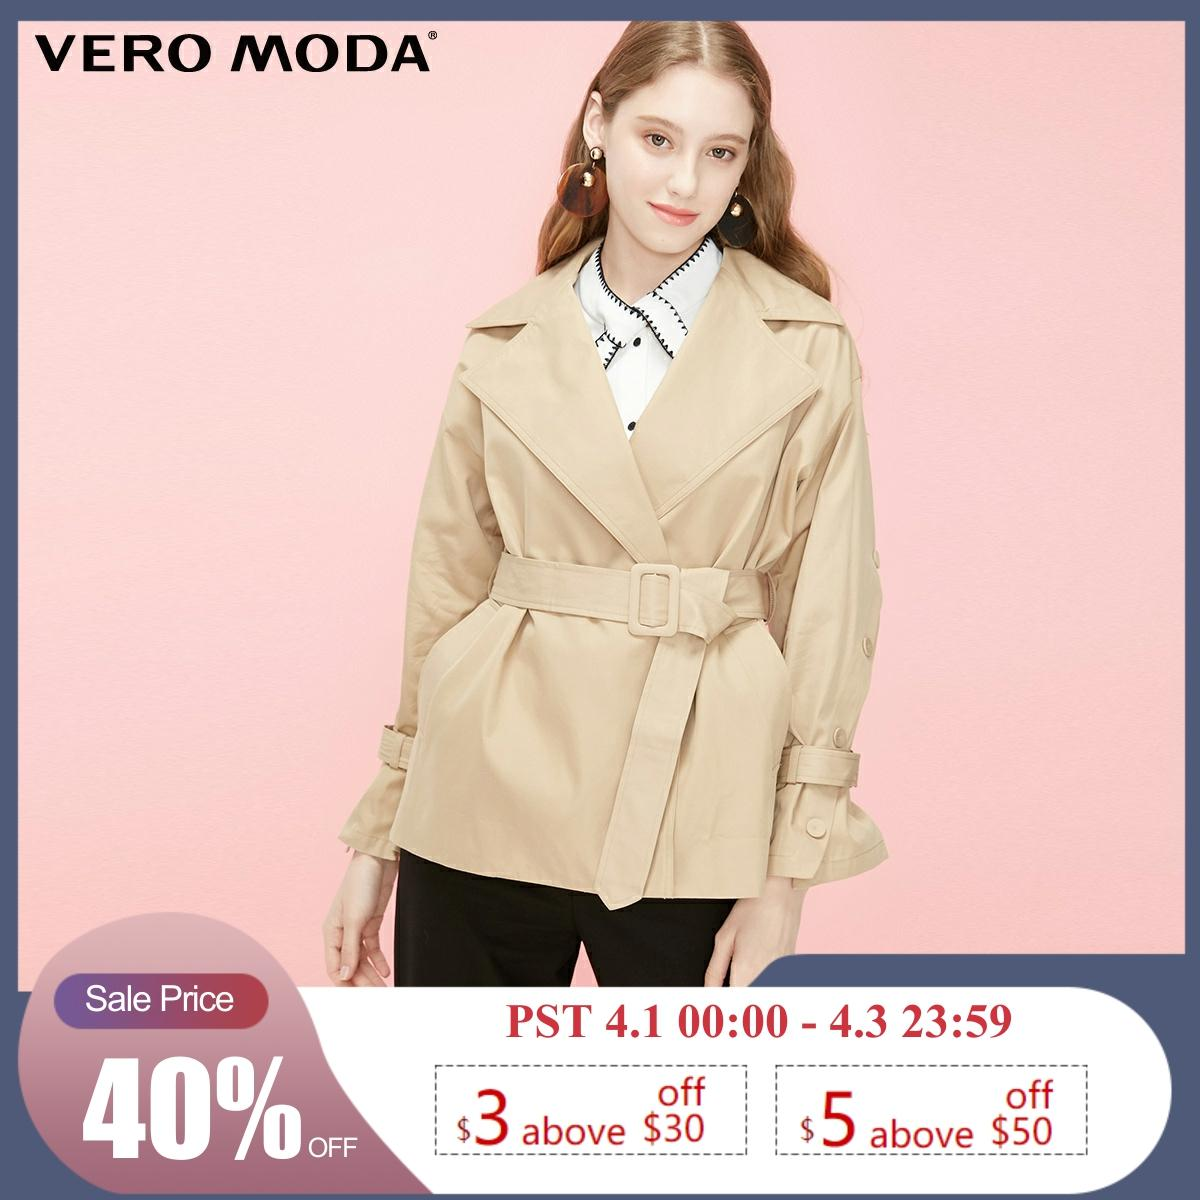 Vero Moda Women's 100% Cotton Decorative Buttons Short Trench Coat | 319117514